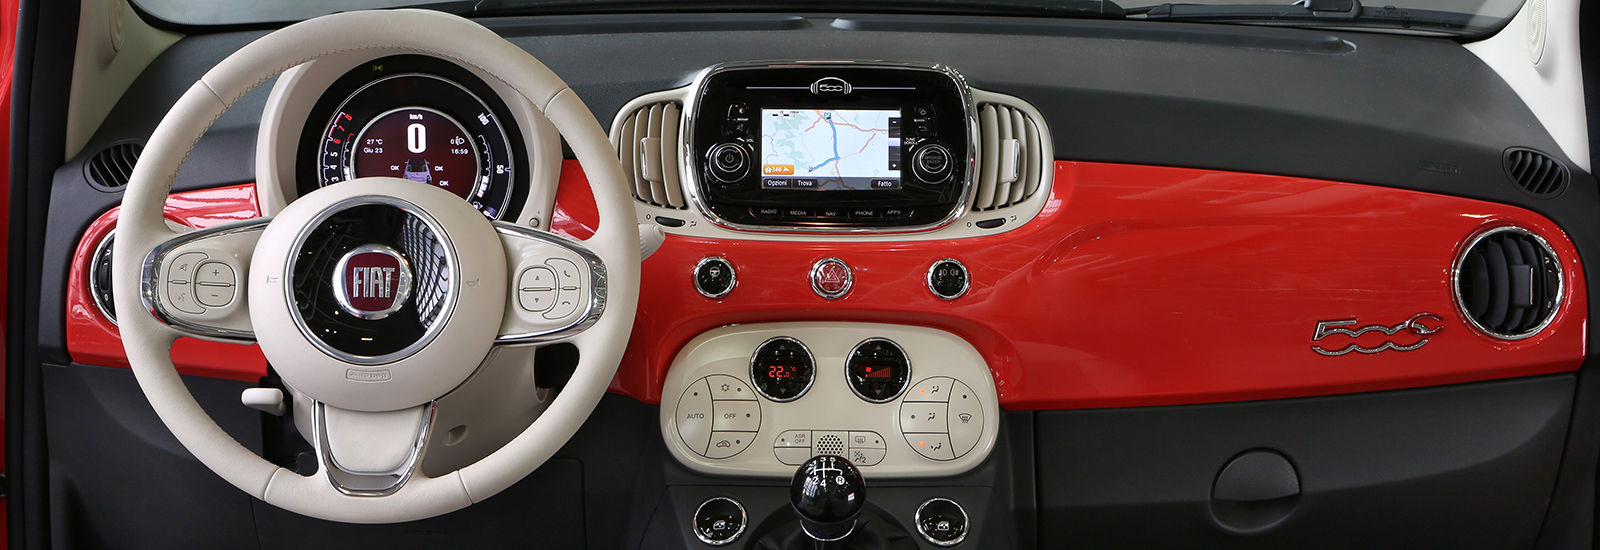 New 65.7mpg Fiat 500 Eco 1.2 now on sale | carwow